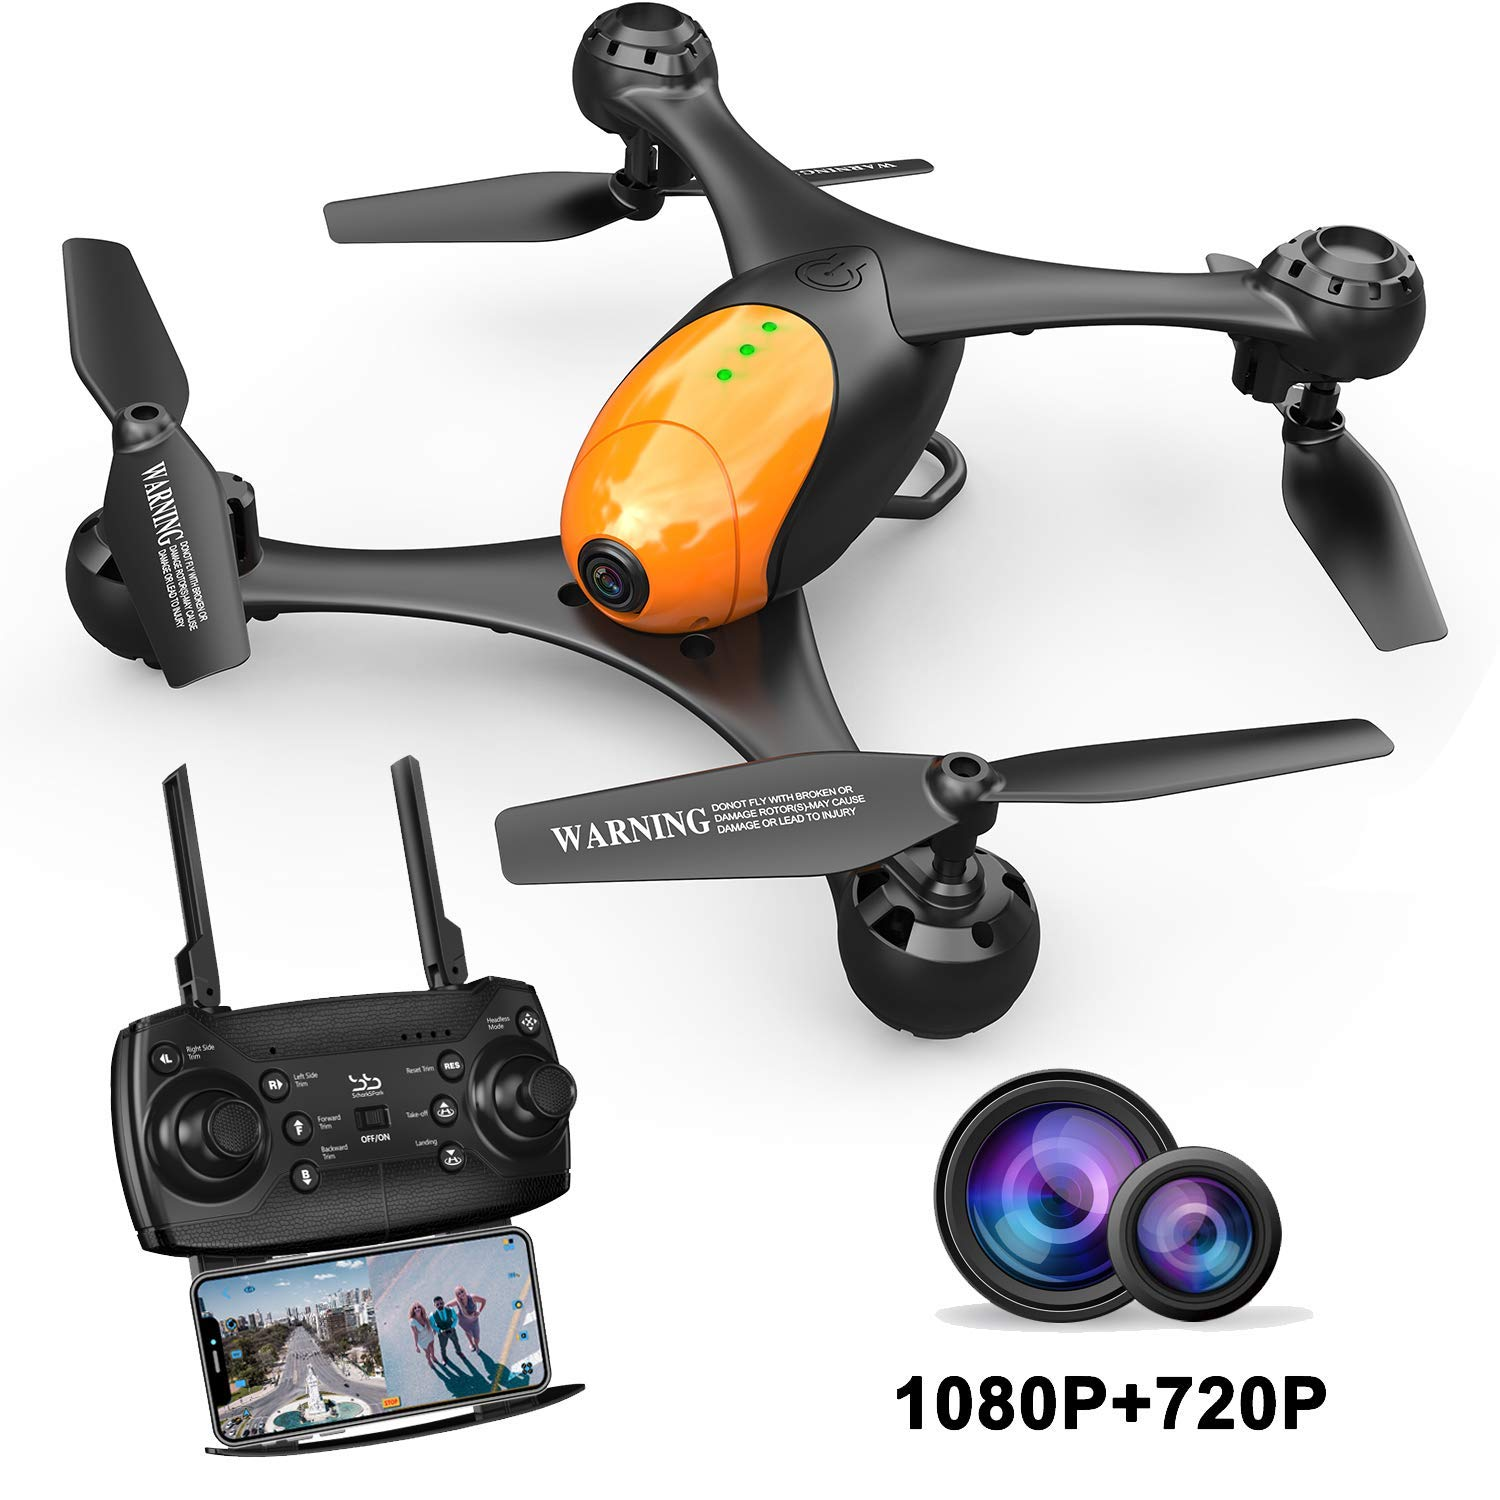 ScharkSpark Drone SS41 The Beetle Drone with 2 Cameras - 1080P FPV HD Camera/Video and 720P Optical Flow Positioning Camera, RC Toy Quadcopter Equipped with Lost-Control Protection Technology by ScharkSpark (Image #1)